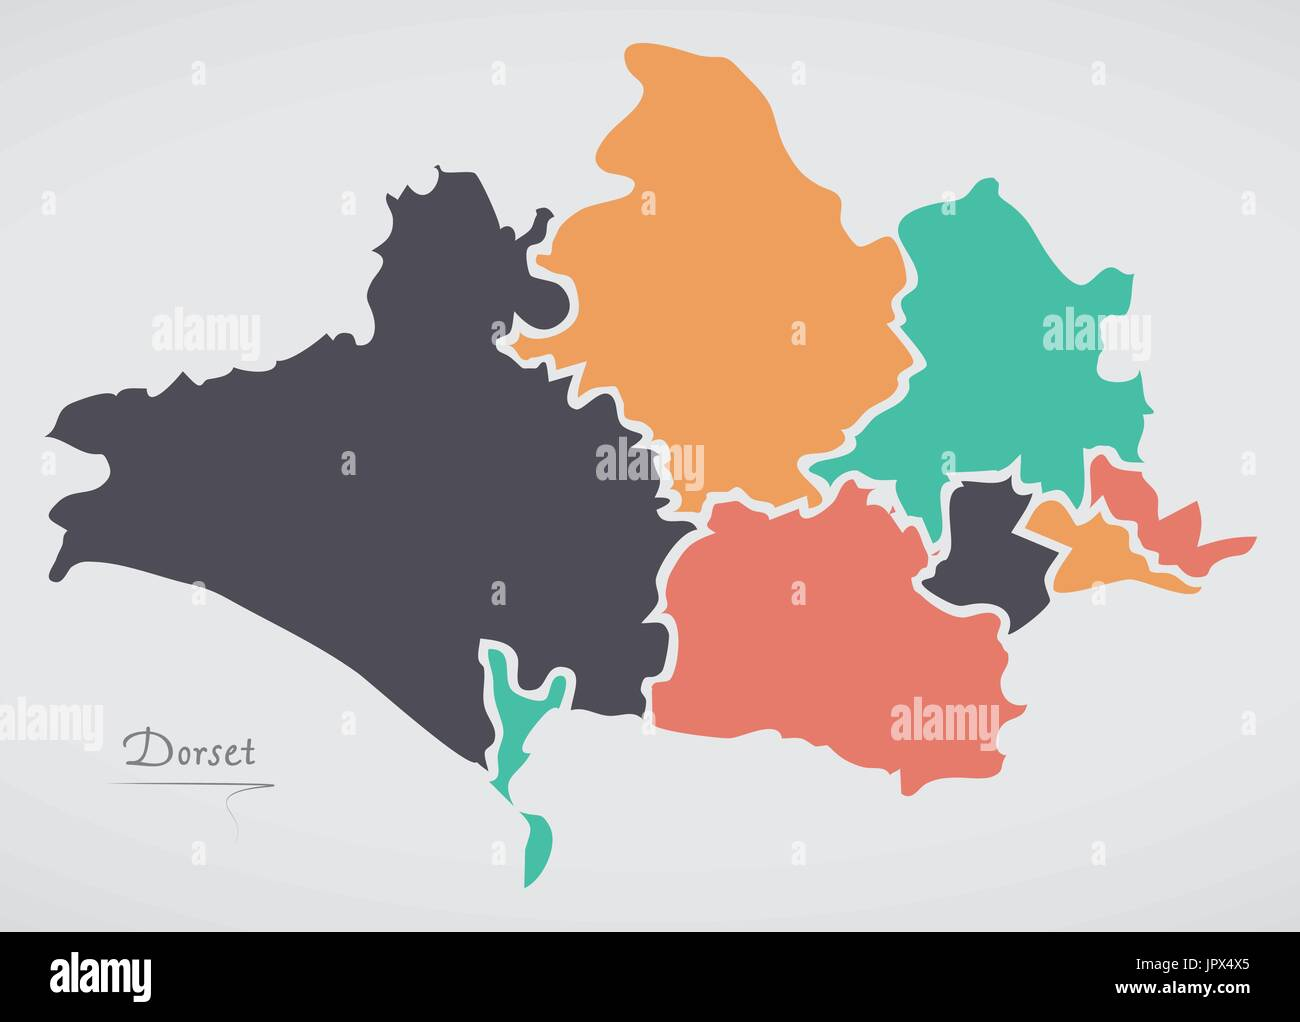 Dorset England Map with states and modern round shapes Stock Vector on